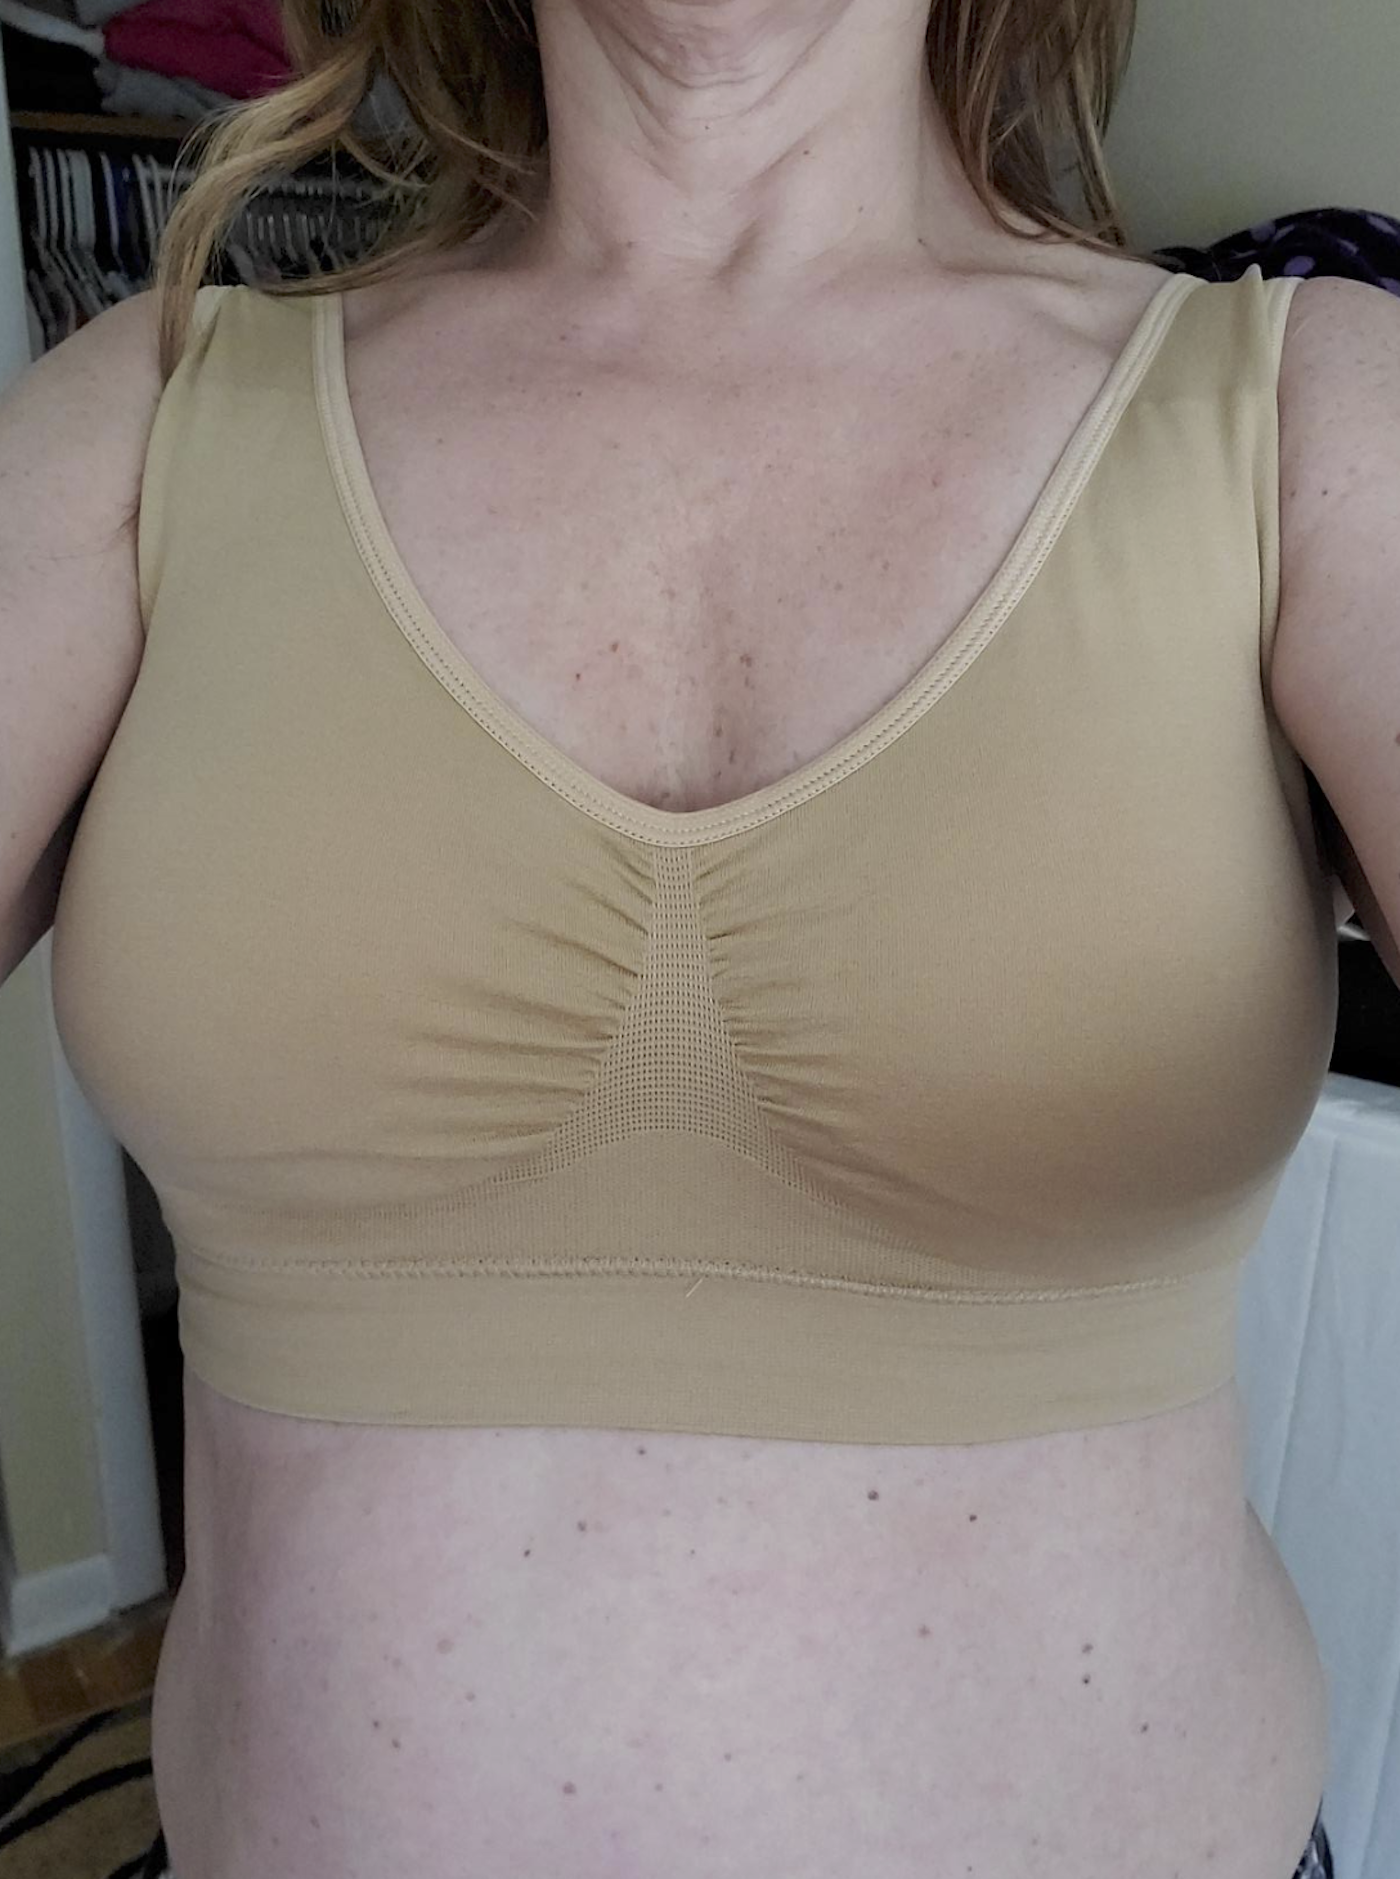 Reviewer in the beige sports bra